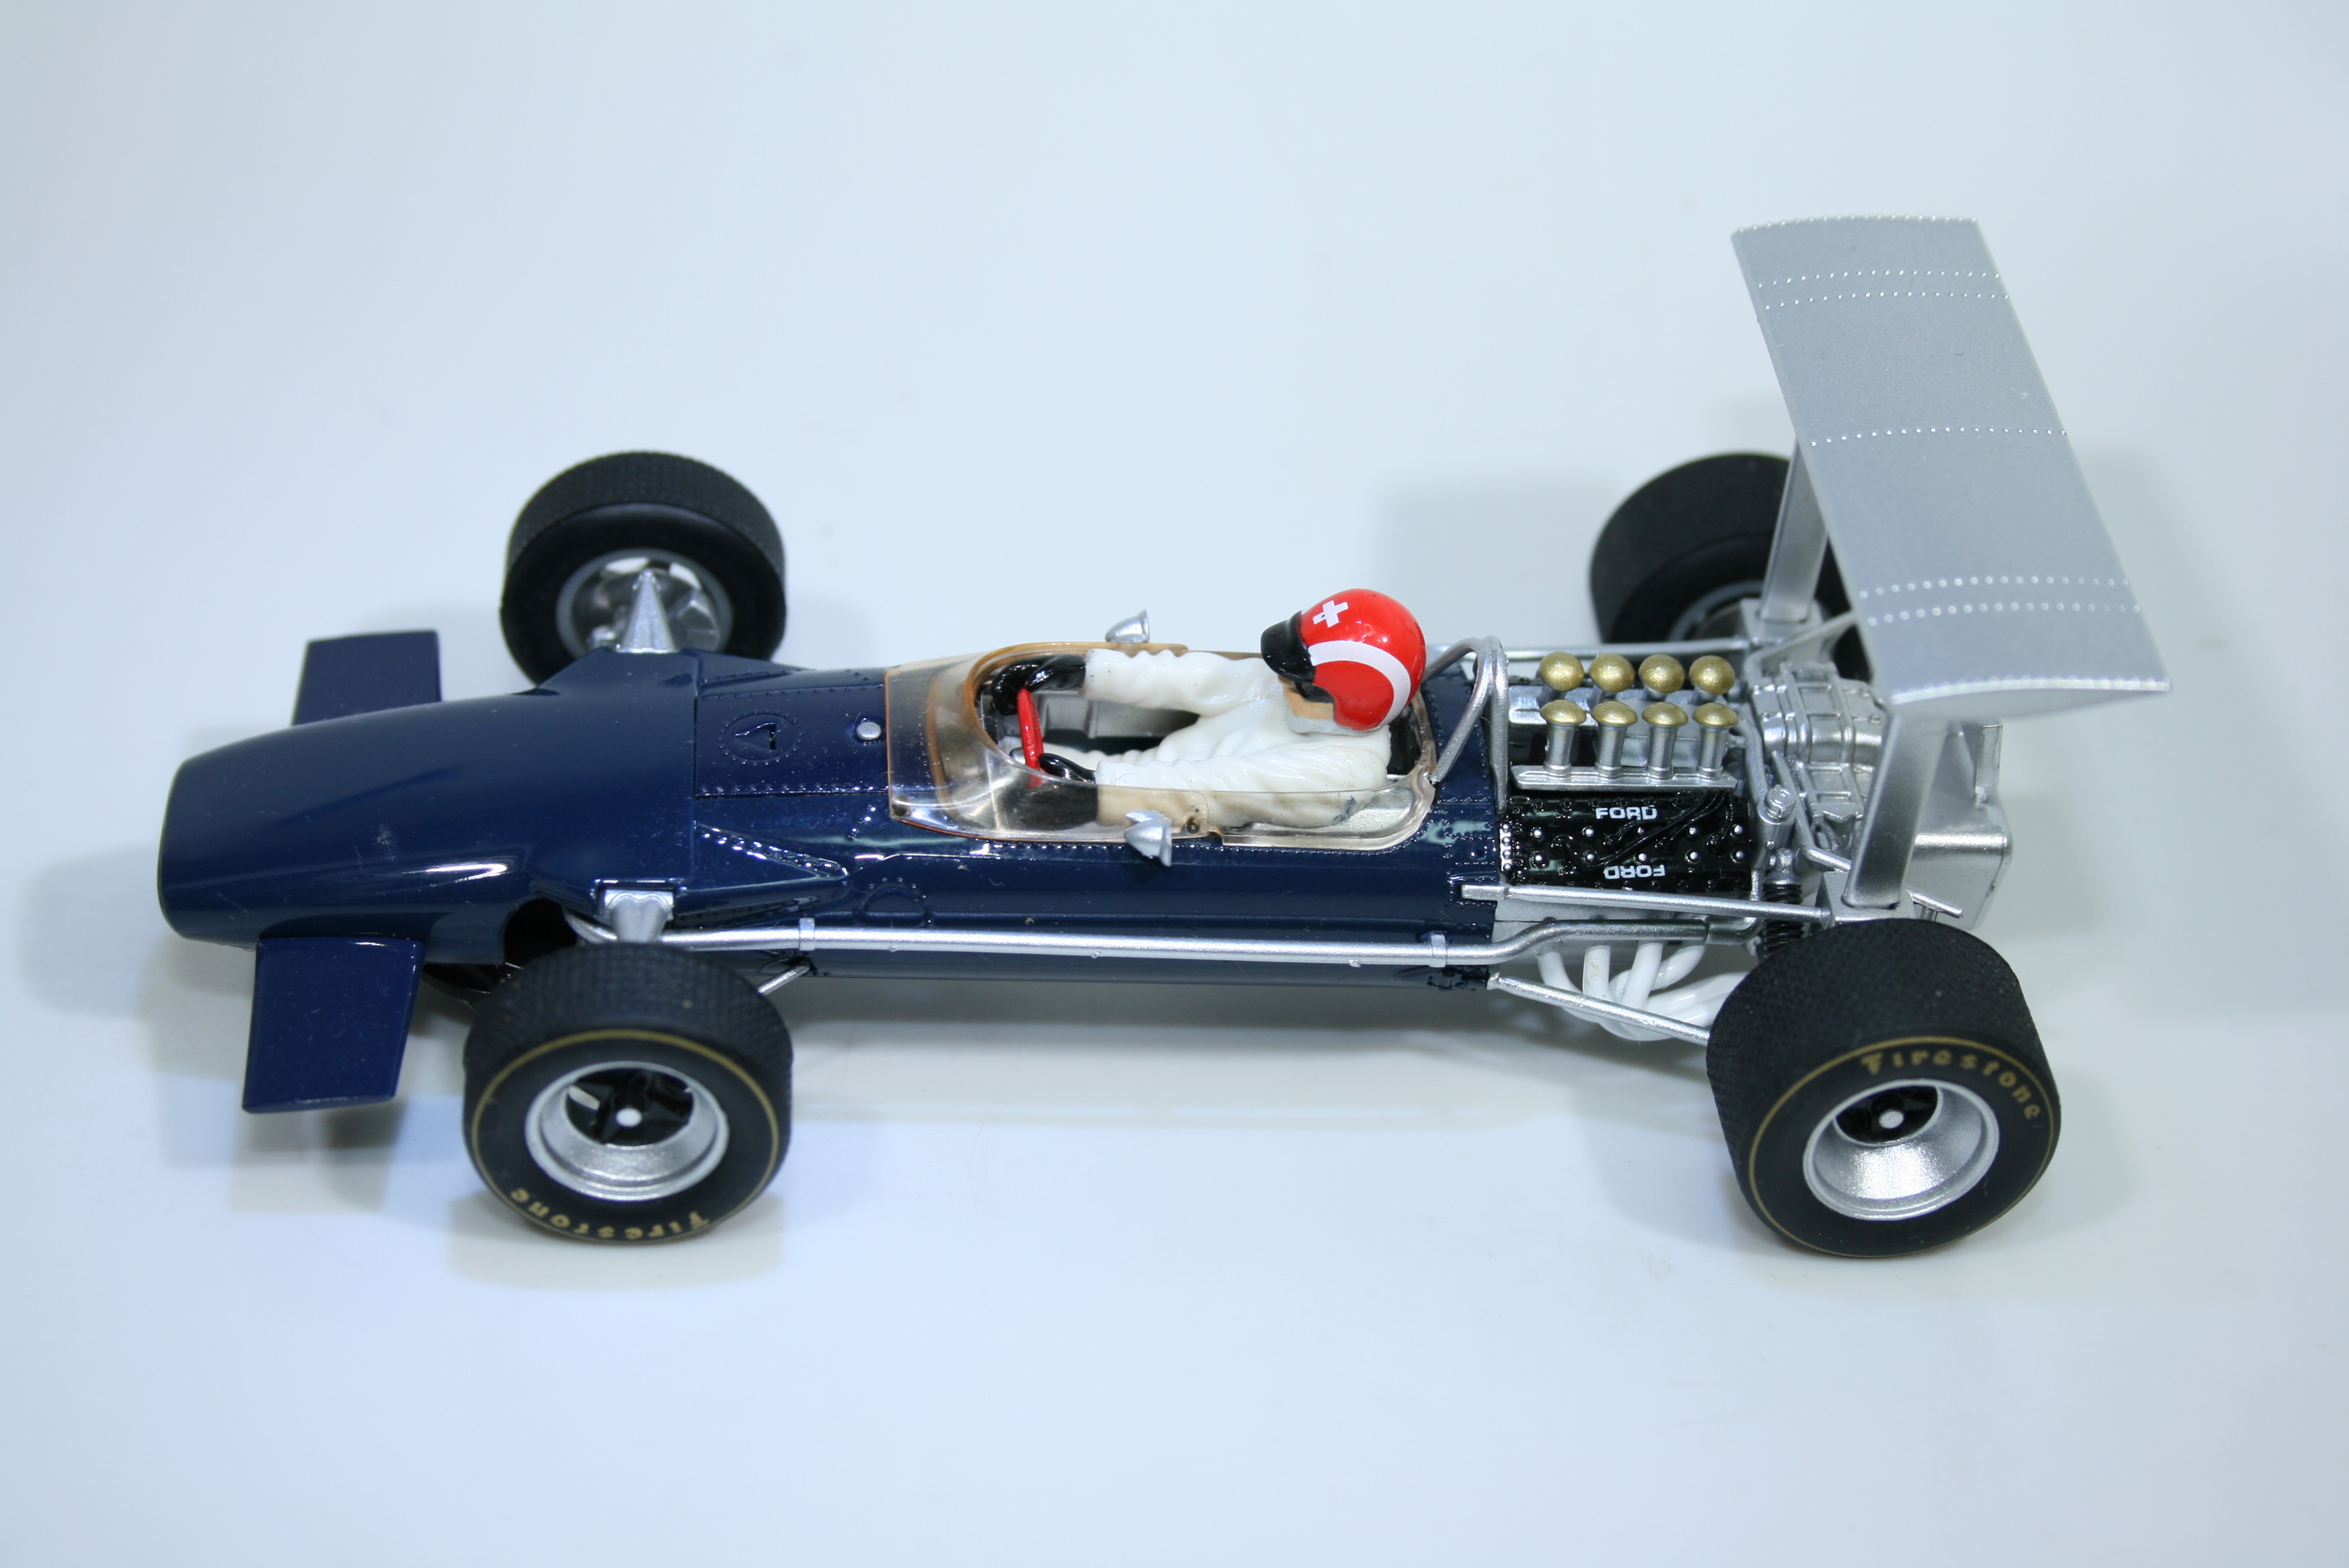 1578 Lotus 49B 1968 J Siffert Scalextric C3413 2013 Pre Production Paint Sample